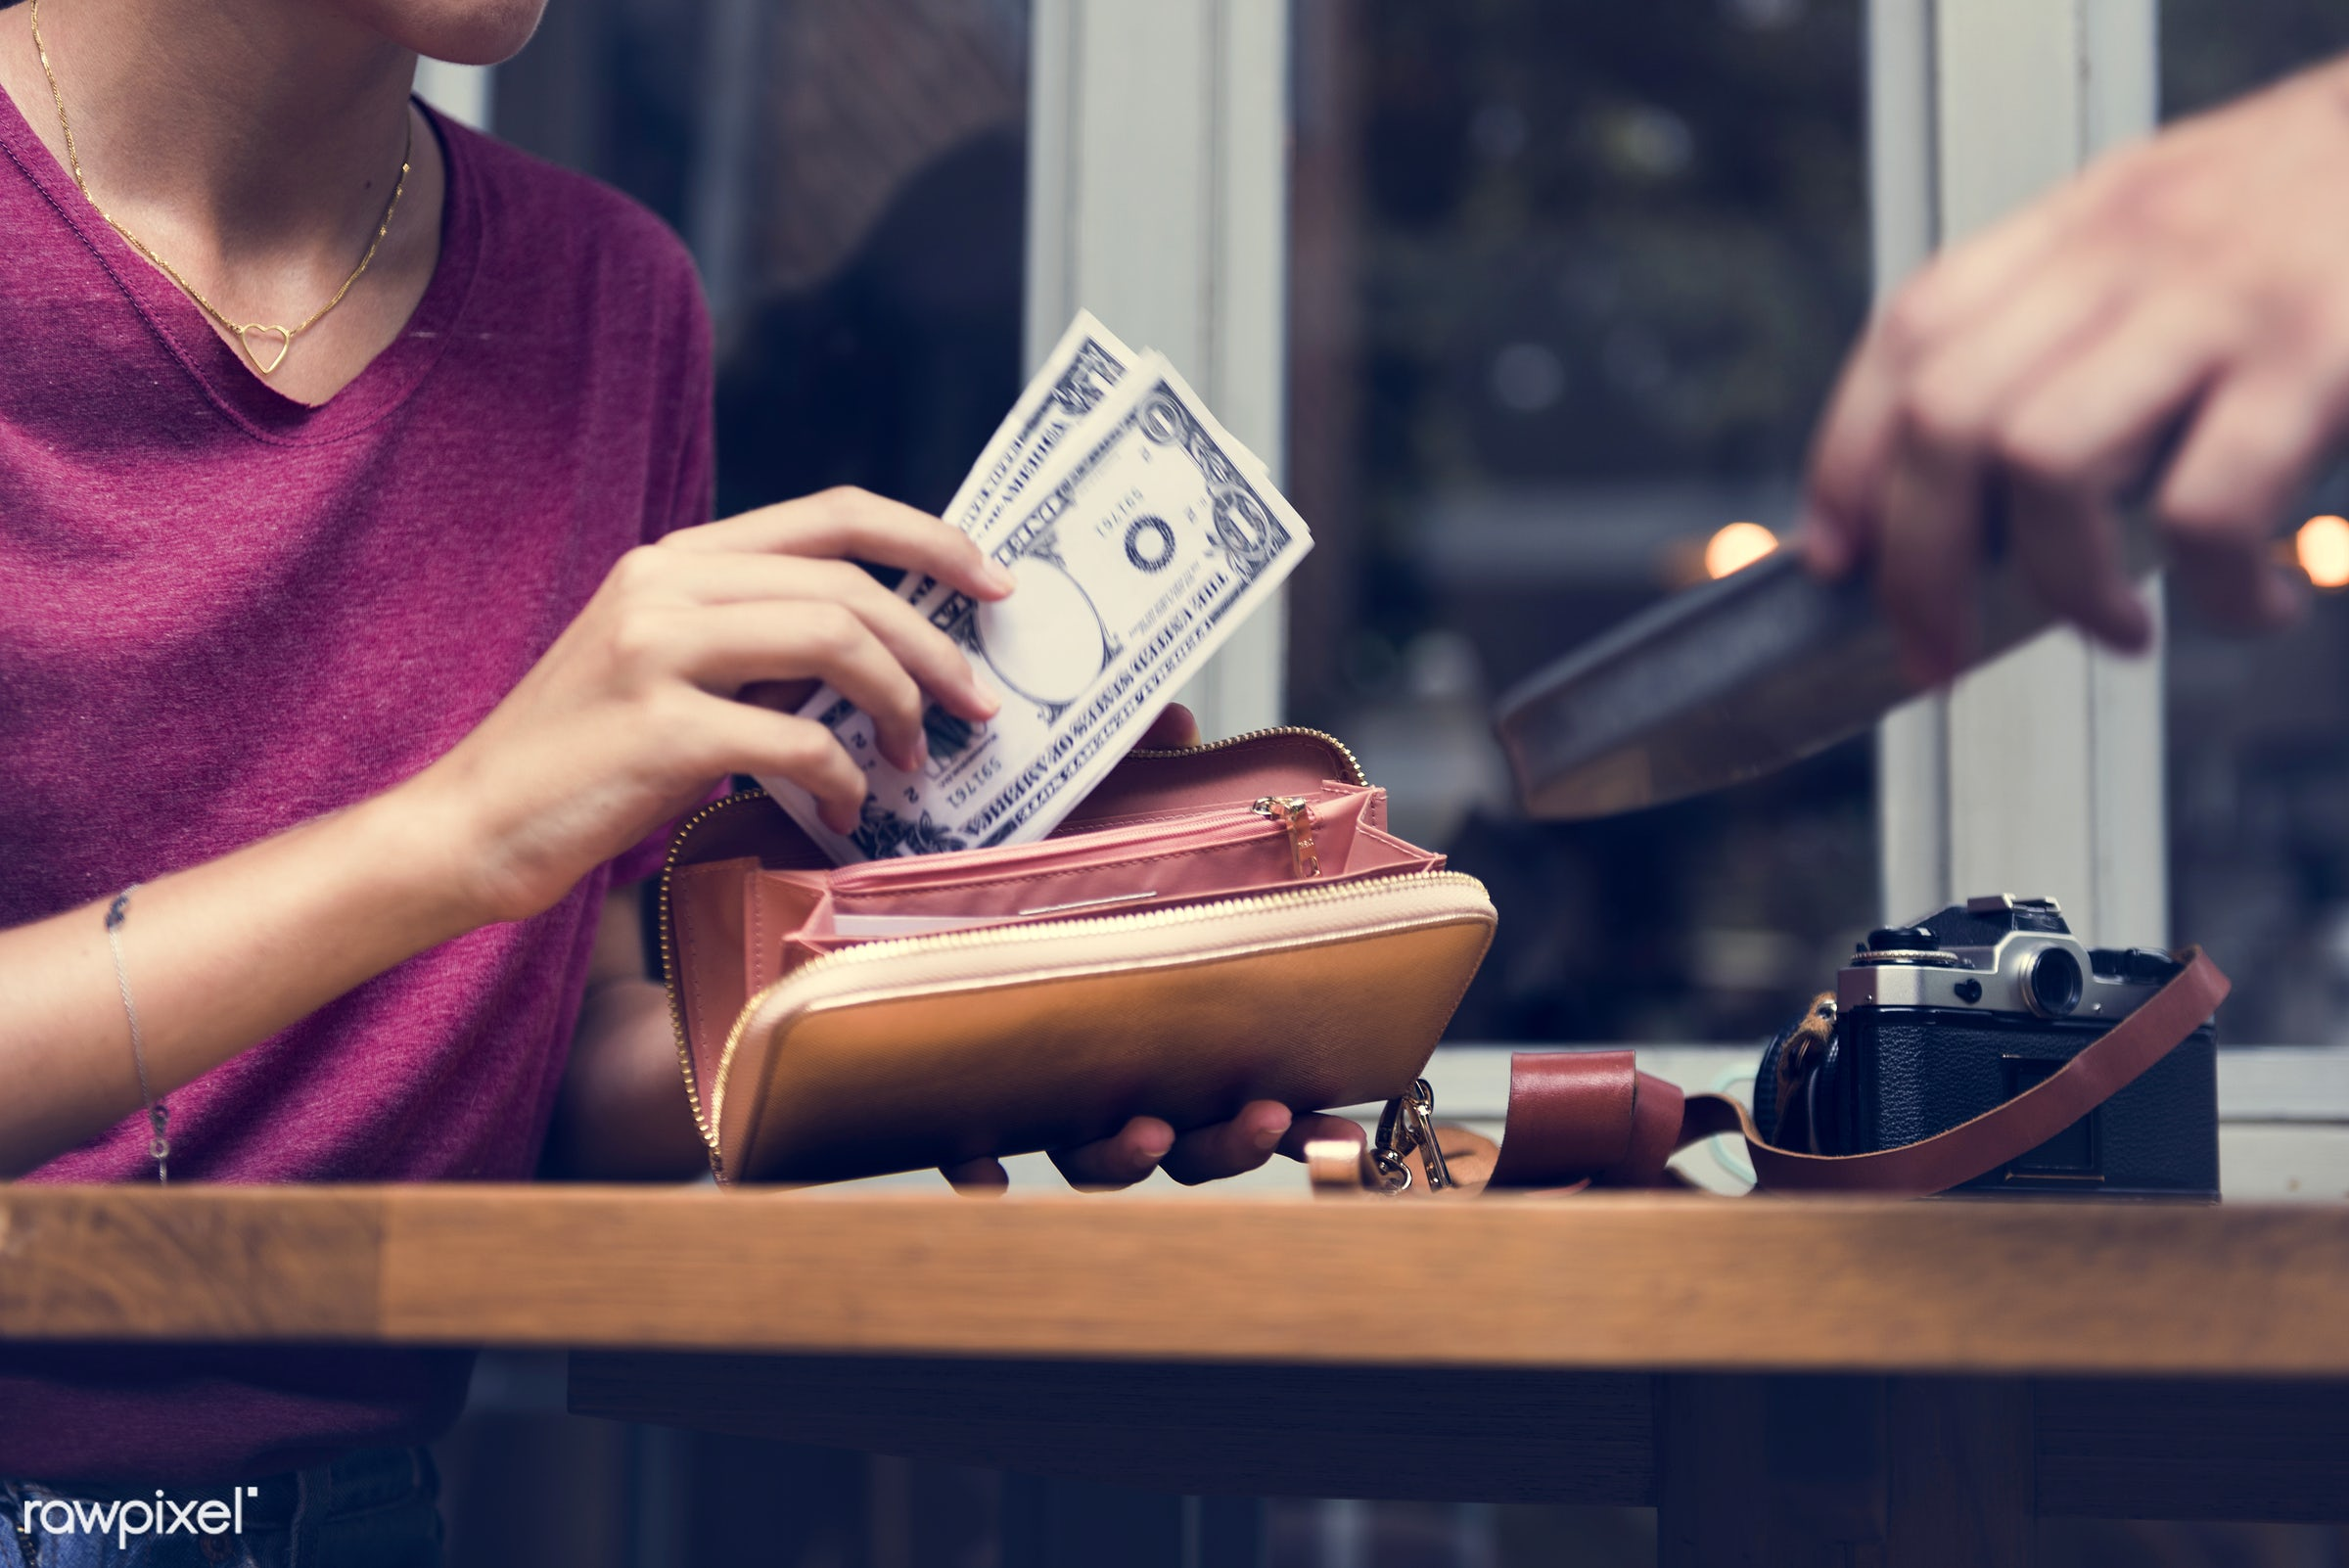 bill, purse, restaurant, date, wallet, girl, woman, money, glass, paying, check, payment, camera, dollars, table, window,...